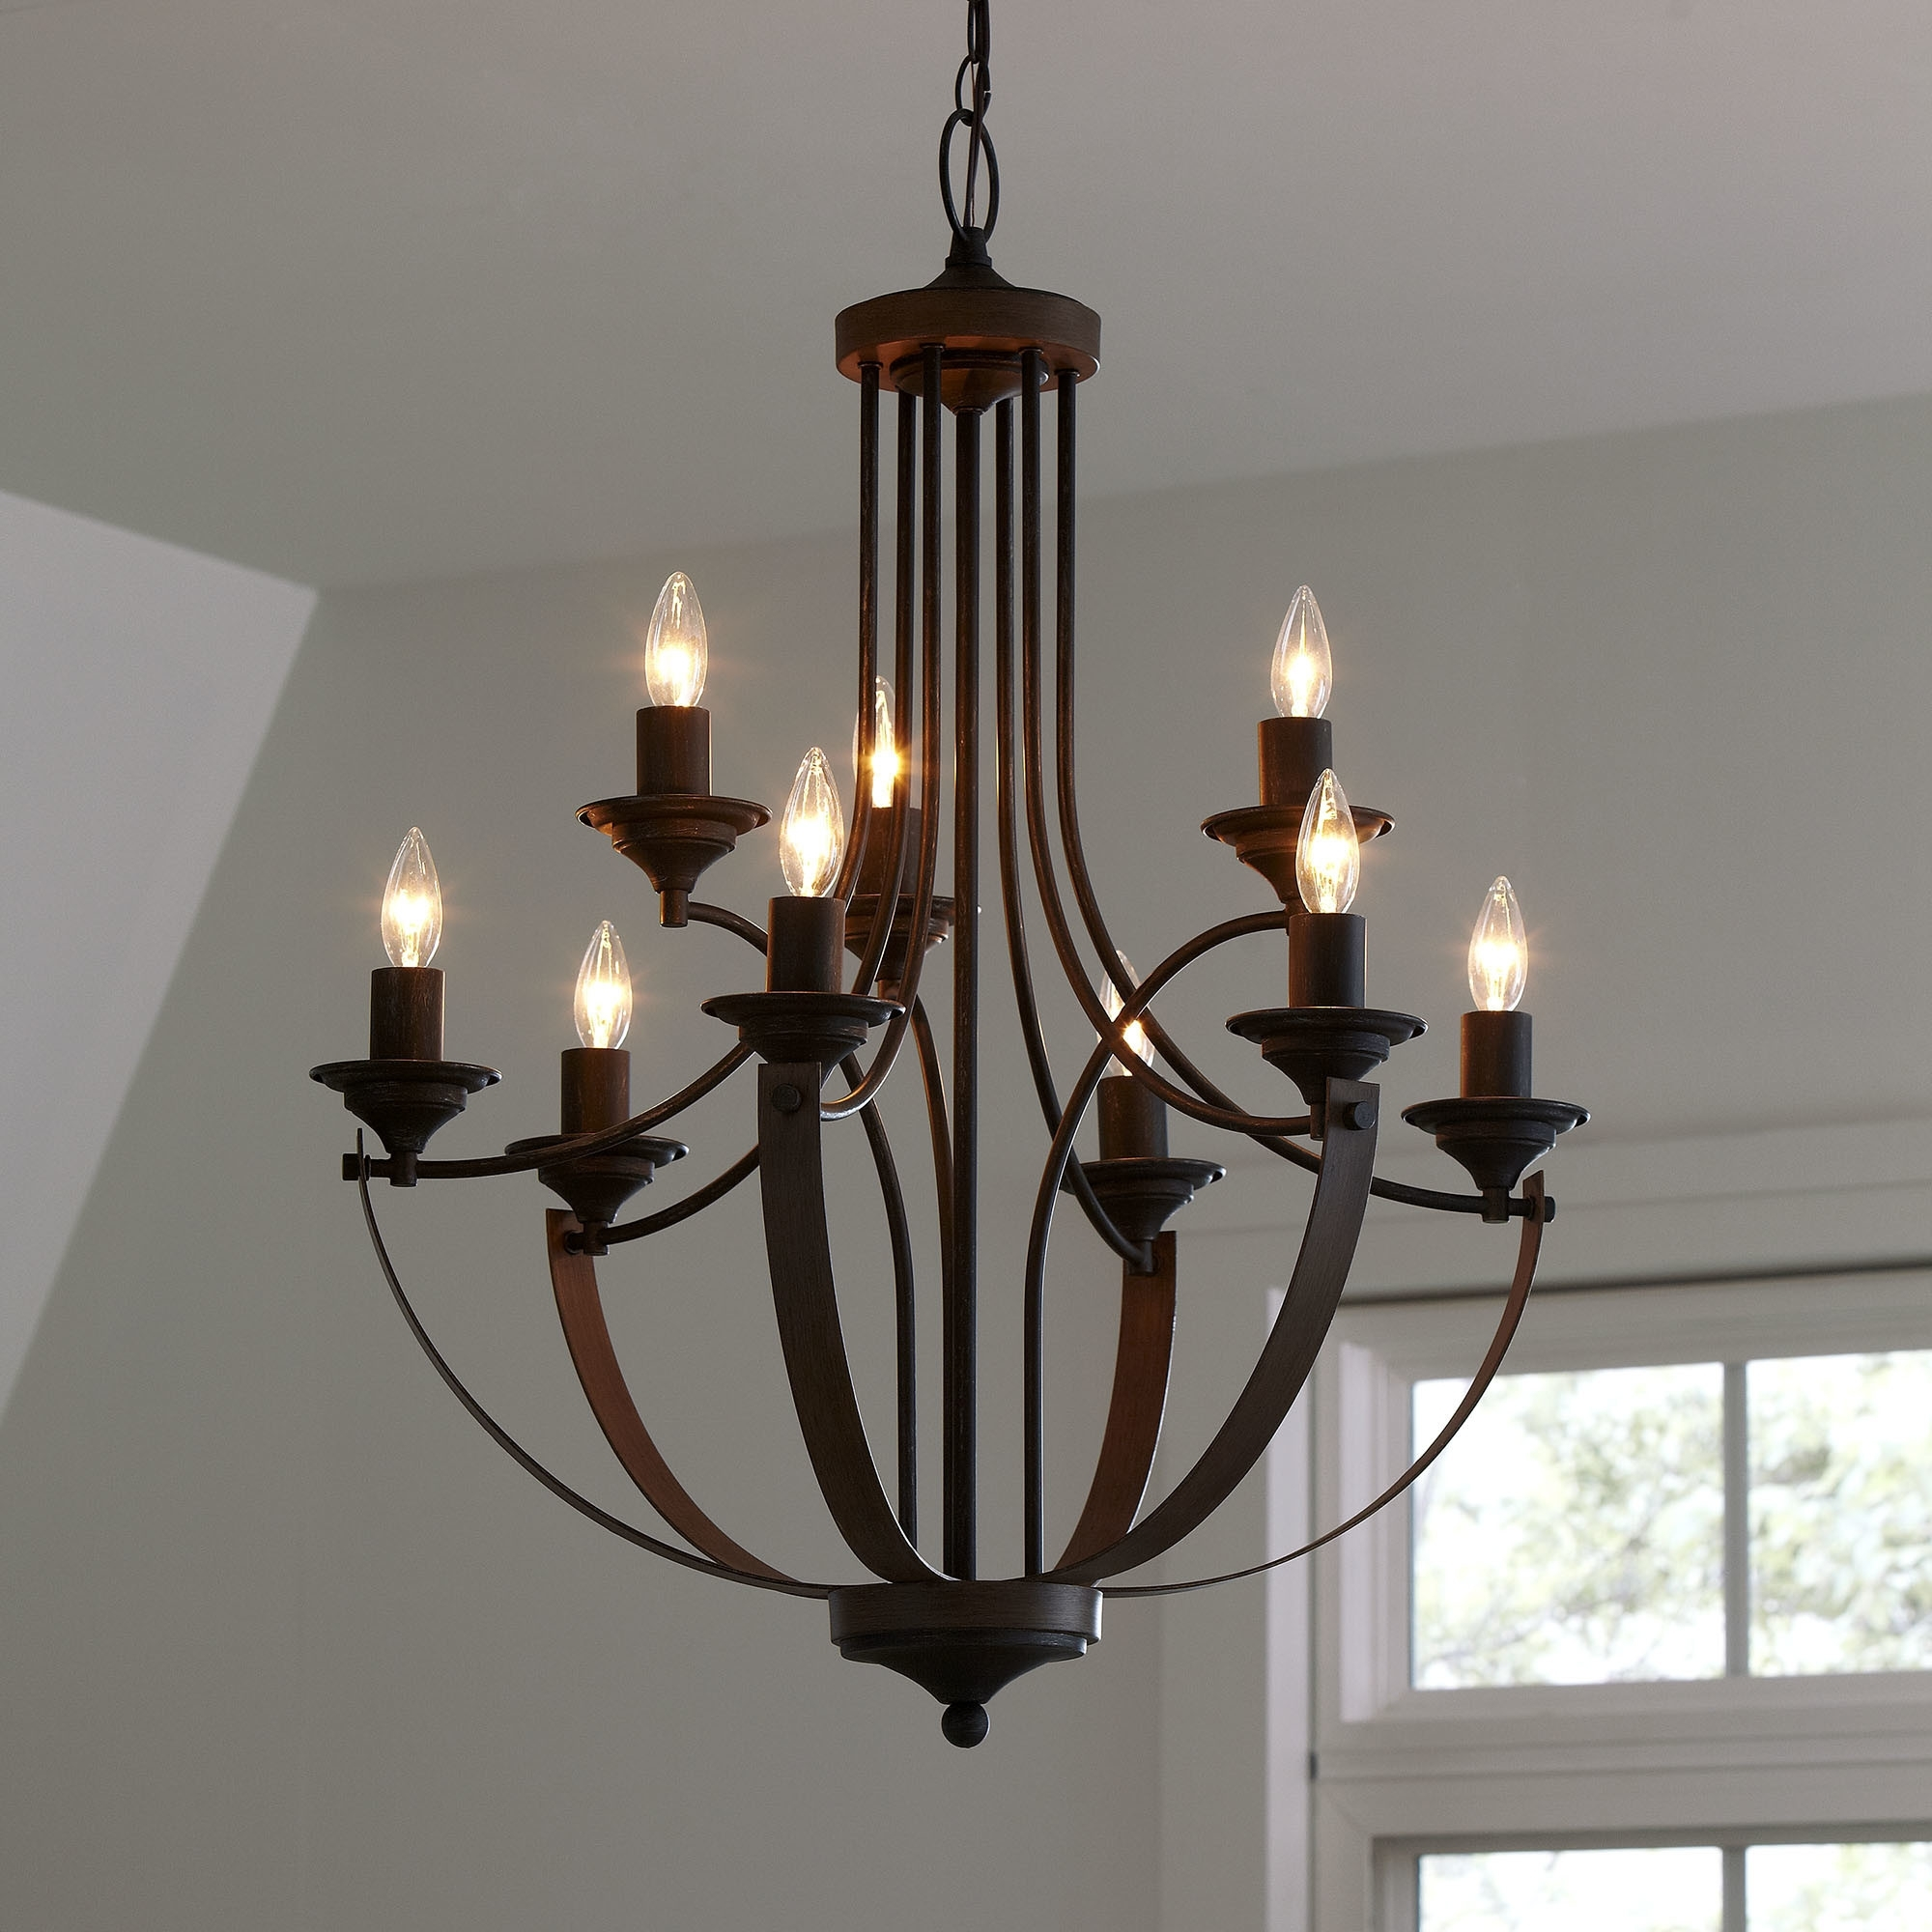 Well Known Chandeliers : Wayfair Chandeliers Luxury Chandeliers Wayfair Camilla Within Wayfair Chandeliers (View 3 of 15)